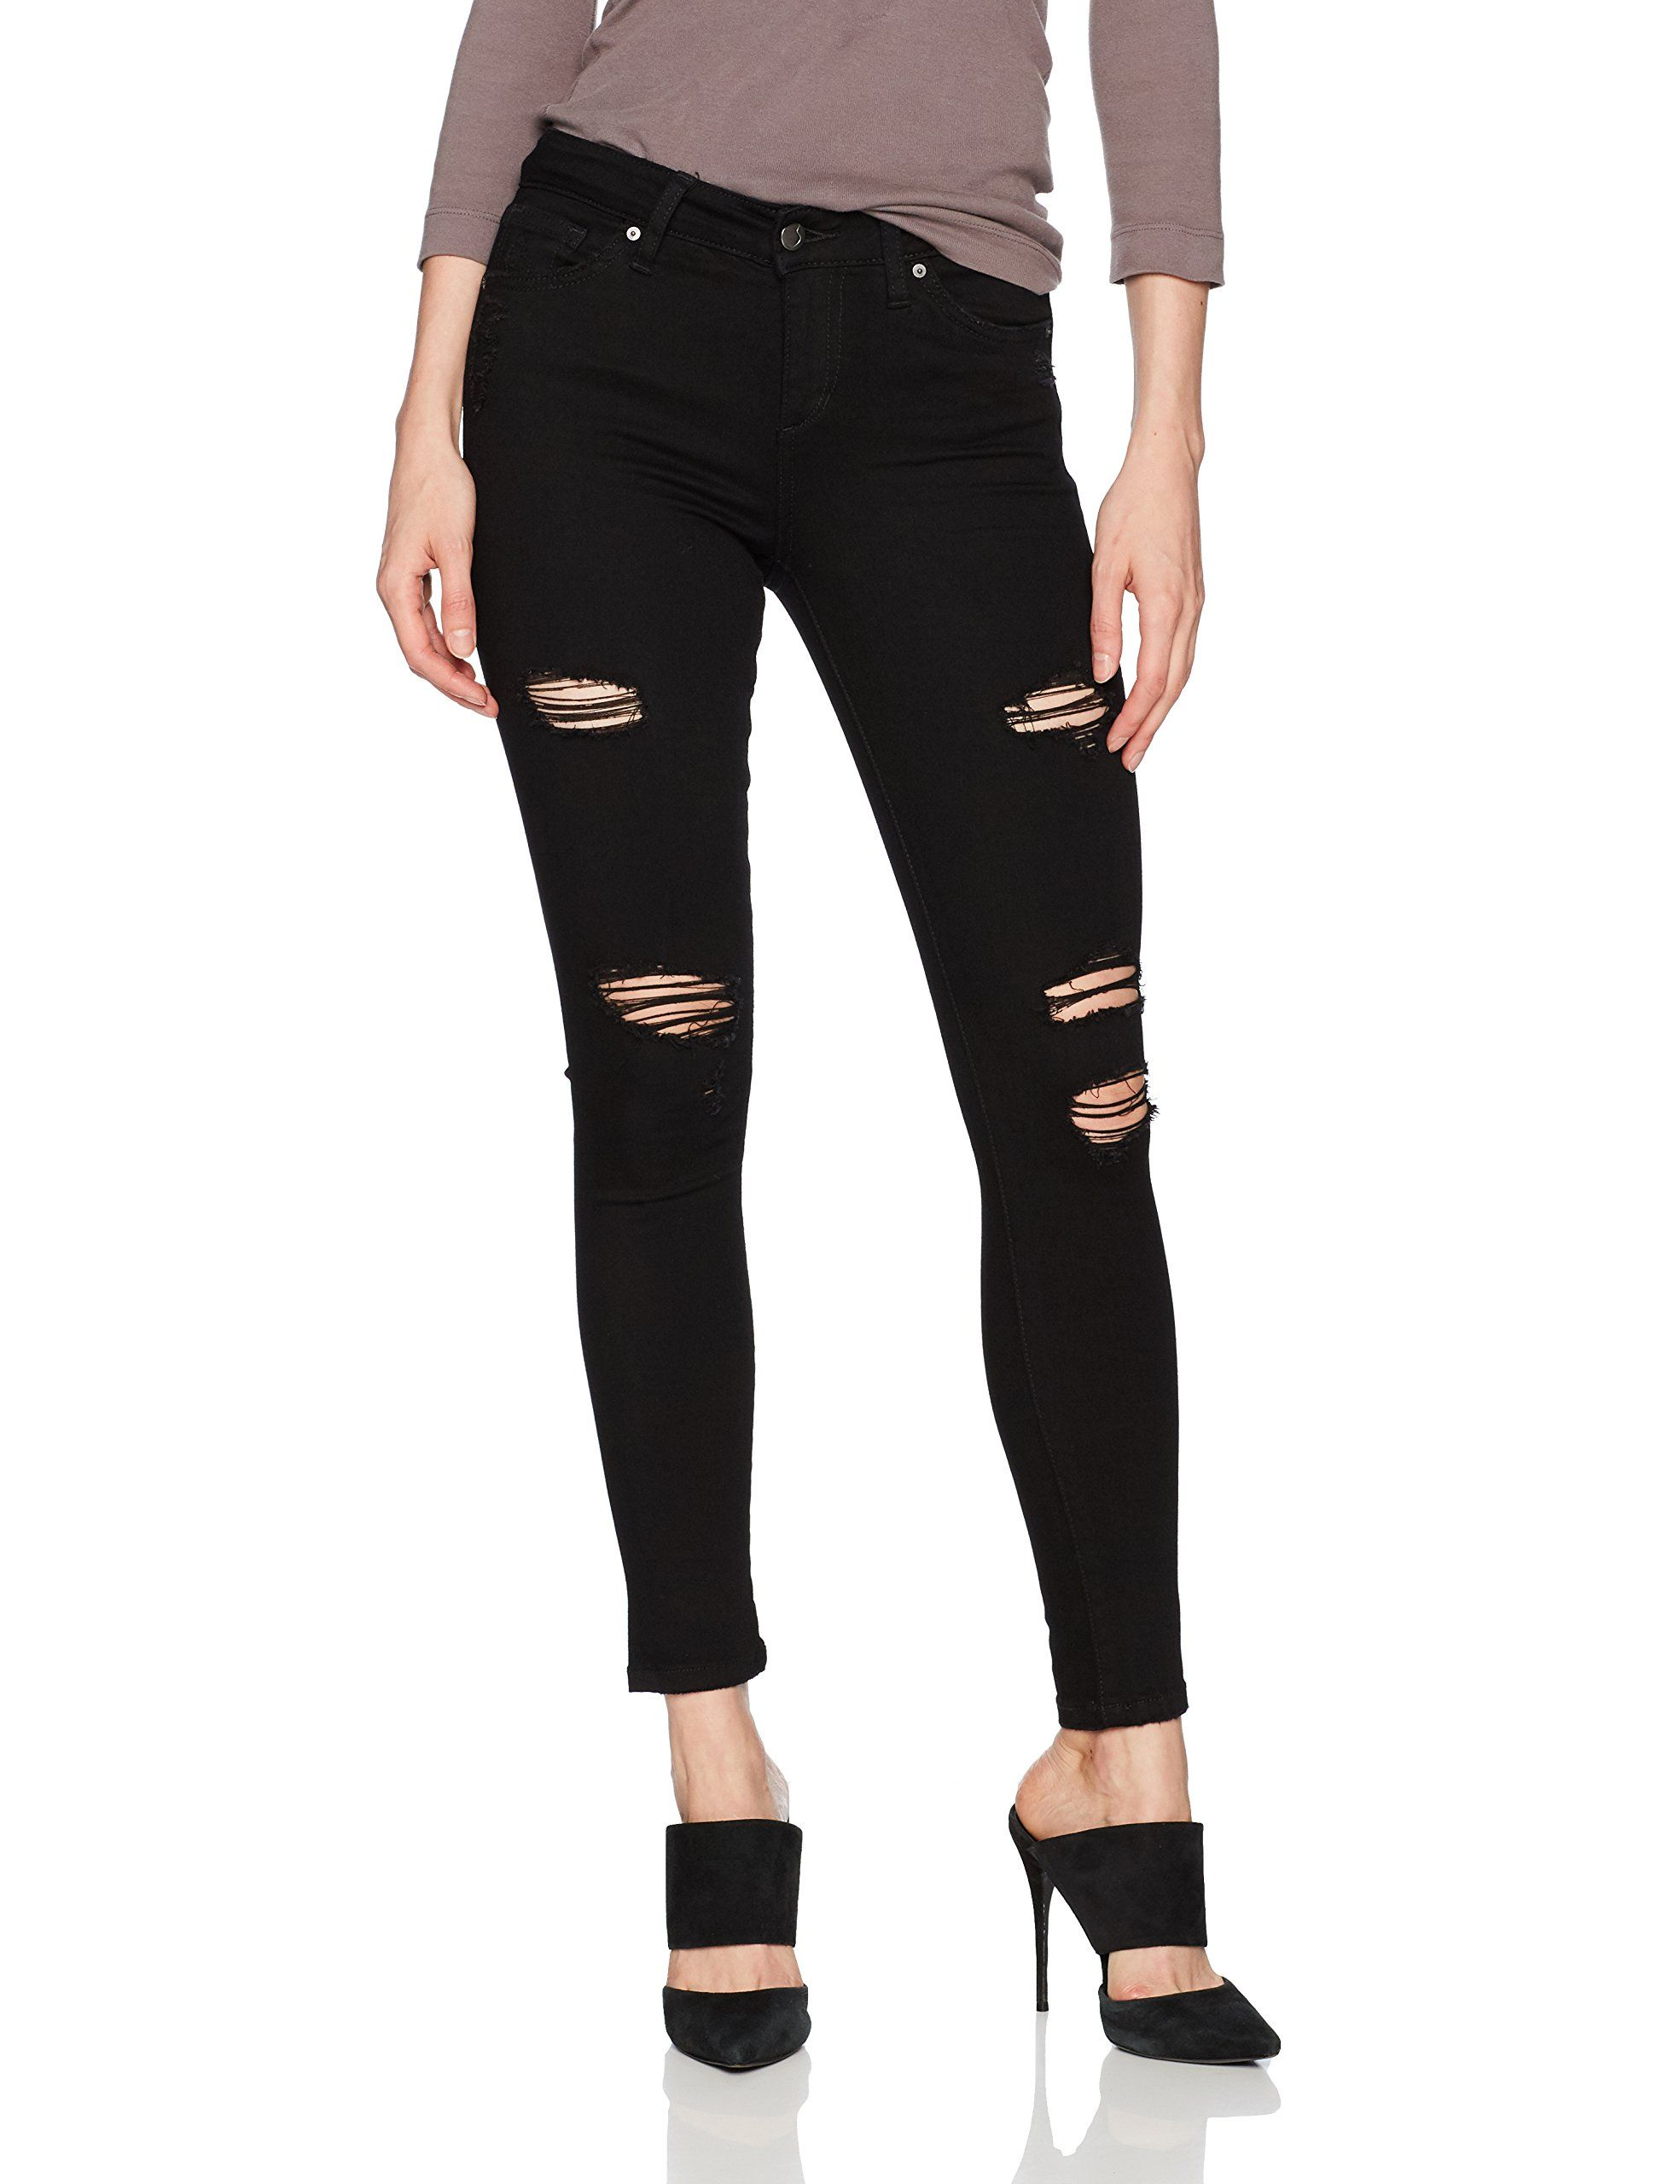 Joes Jeans Womens Icon Mid Rise Skinny Ankle Jean Jeans